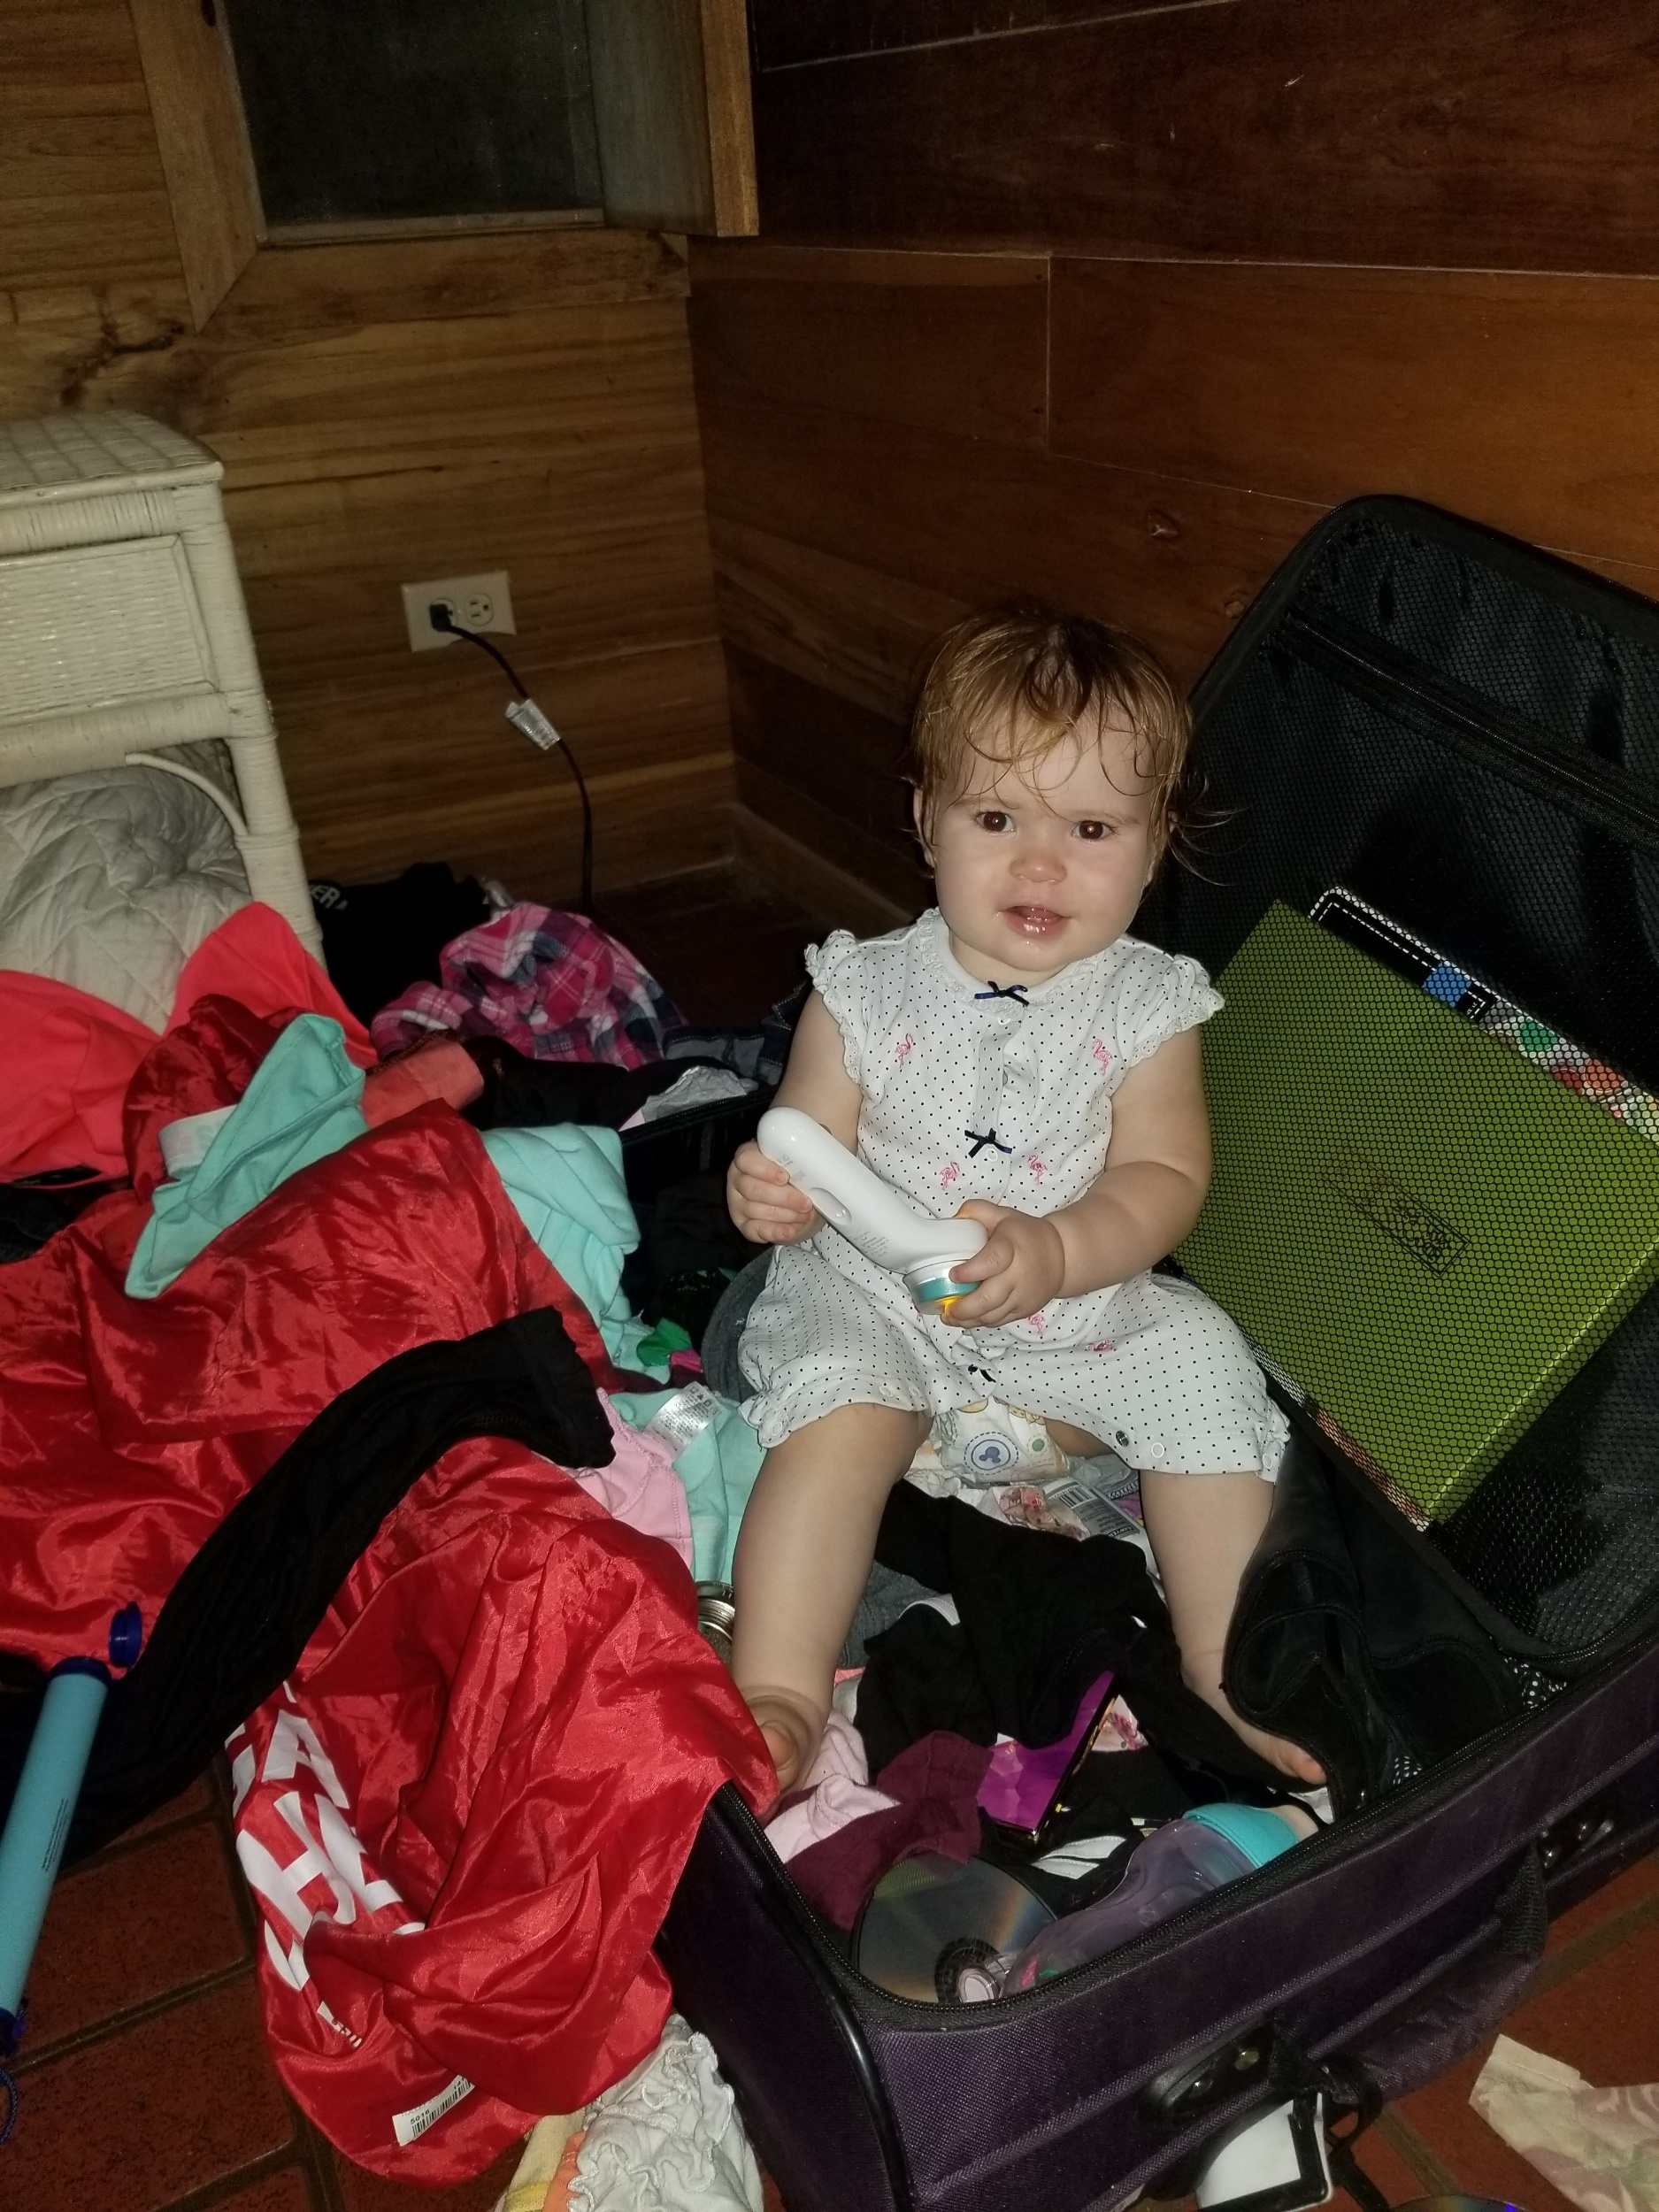 What it's really like travelling with a toddler 😜, but she was having fun and I didn't want to burst her bubble. I did however ensure there was no scorpions in our luggage before I let her continue on playing.